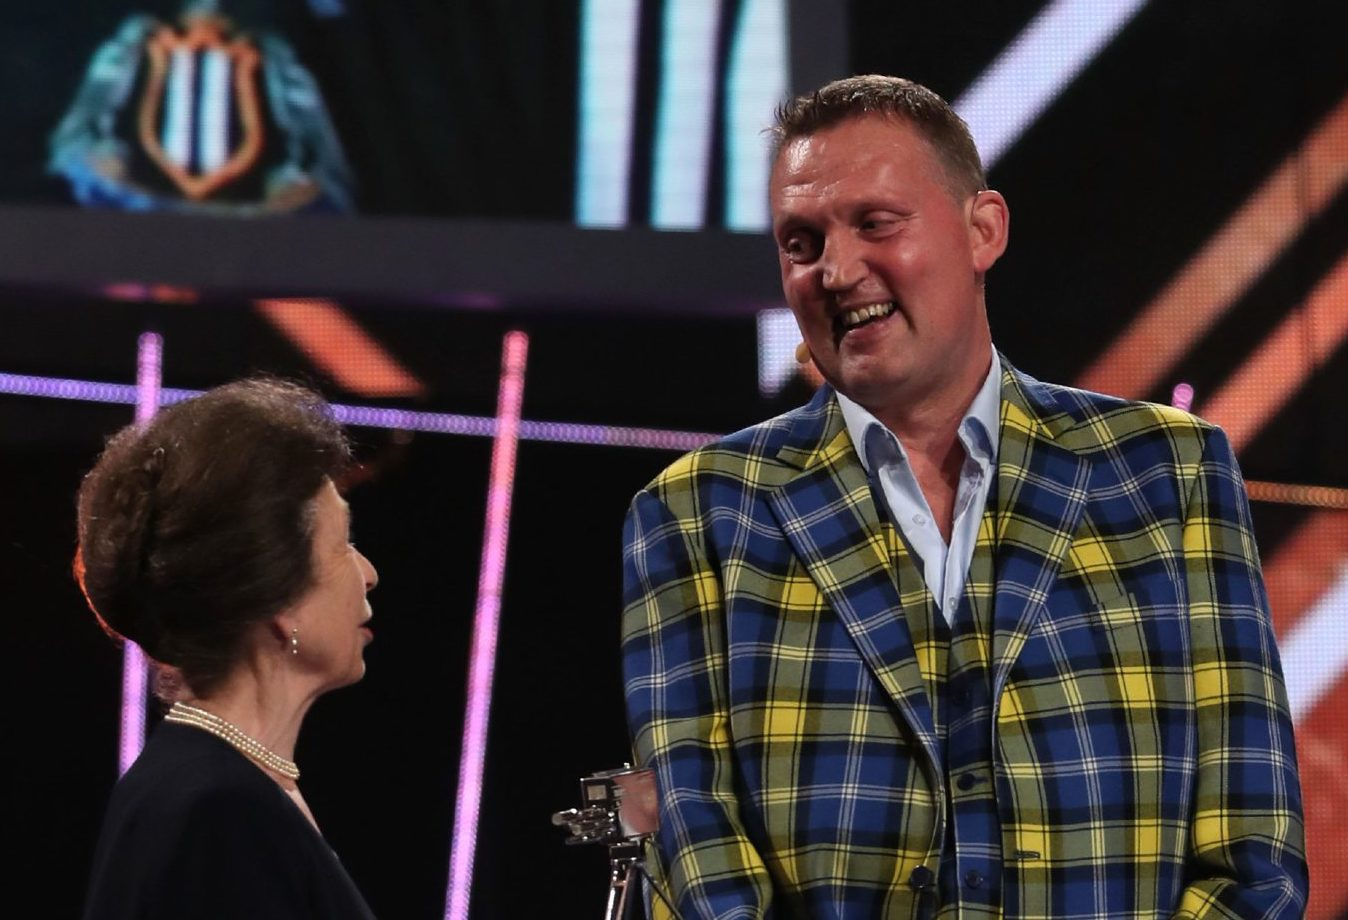 Doddie Weir (right) receives his award from The Princess Royal during the BBC Sports Personality of the Year 2019 at The P&J Live, Aberdeen.